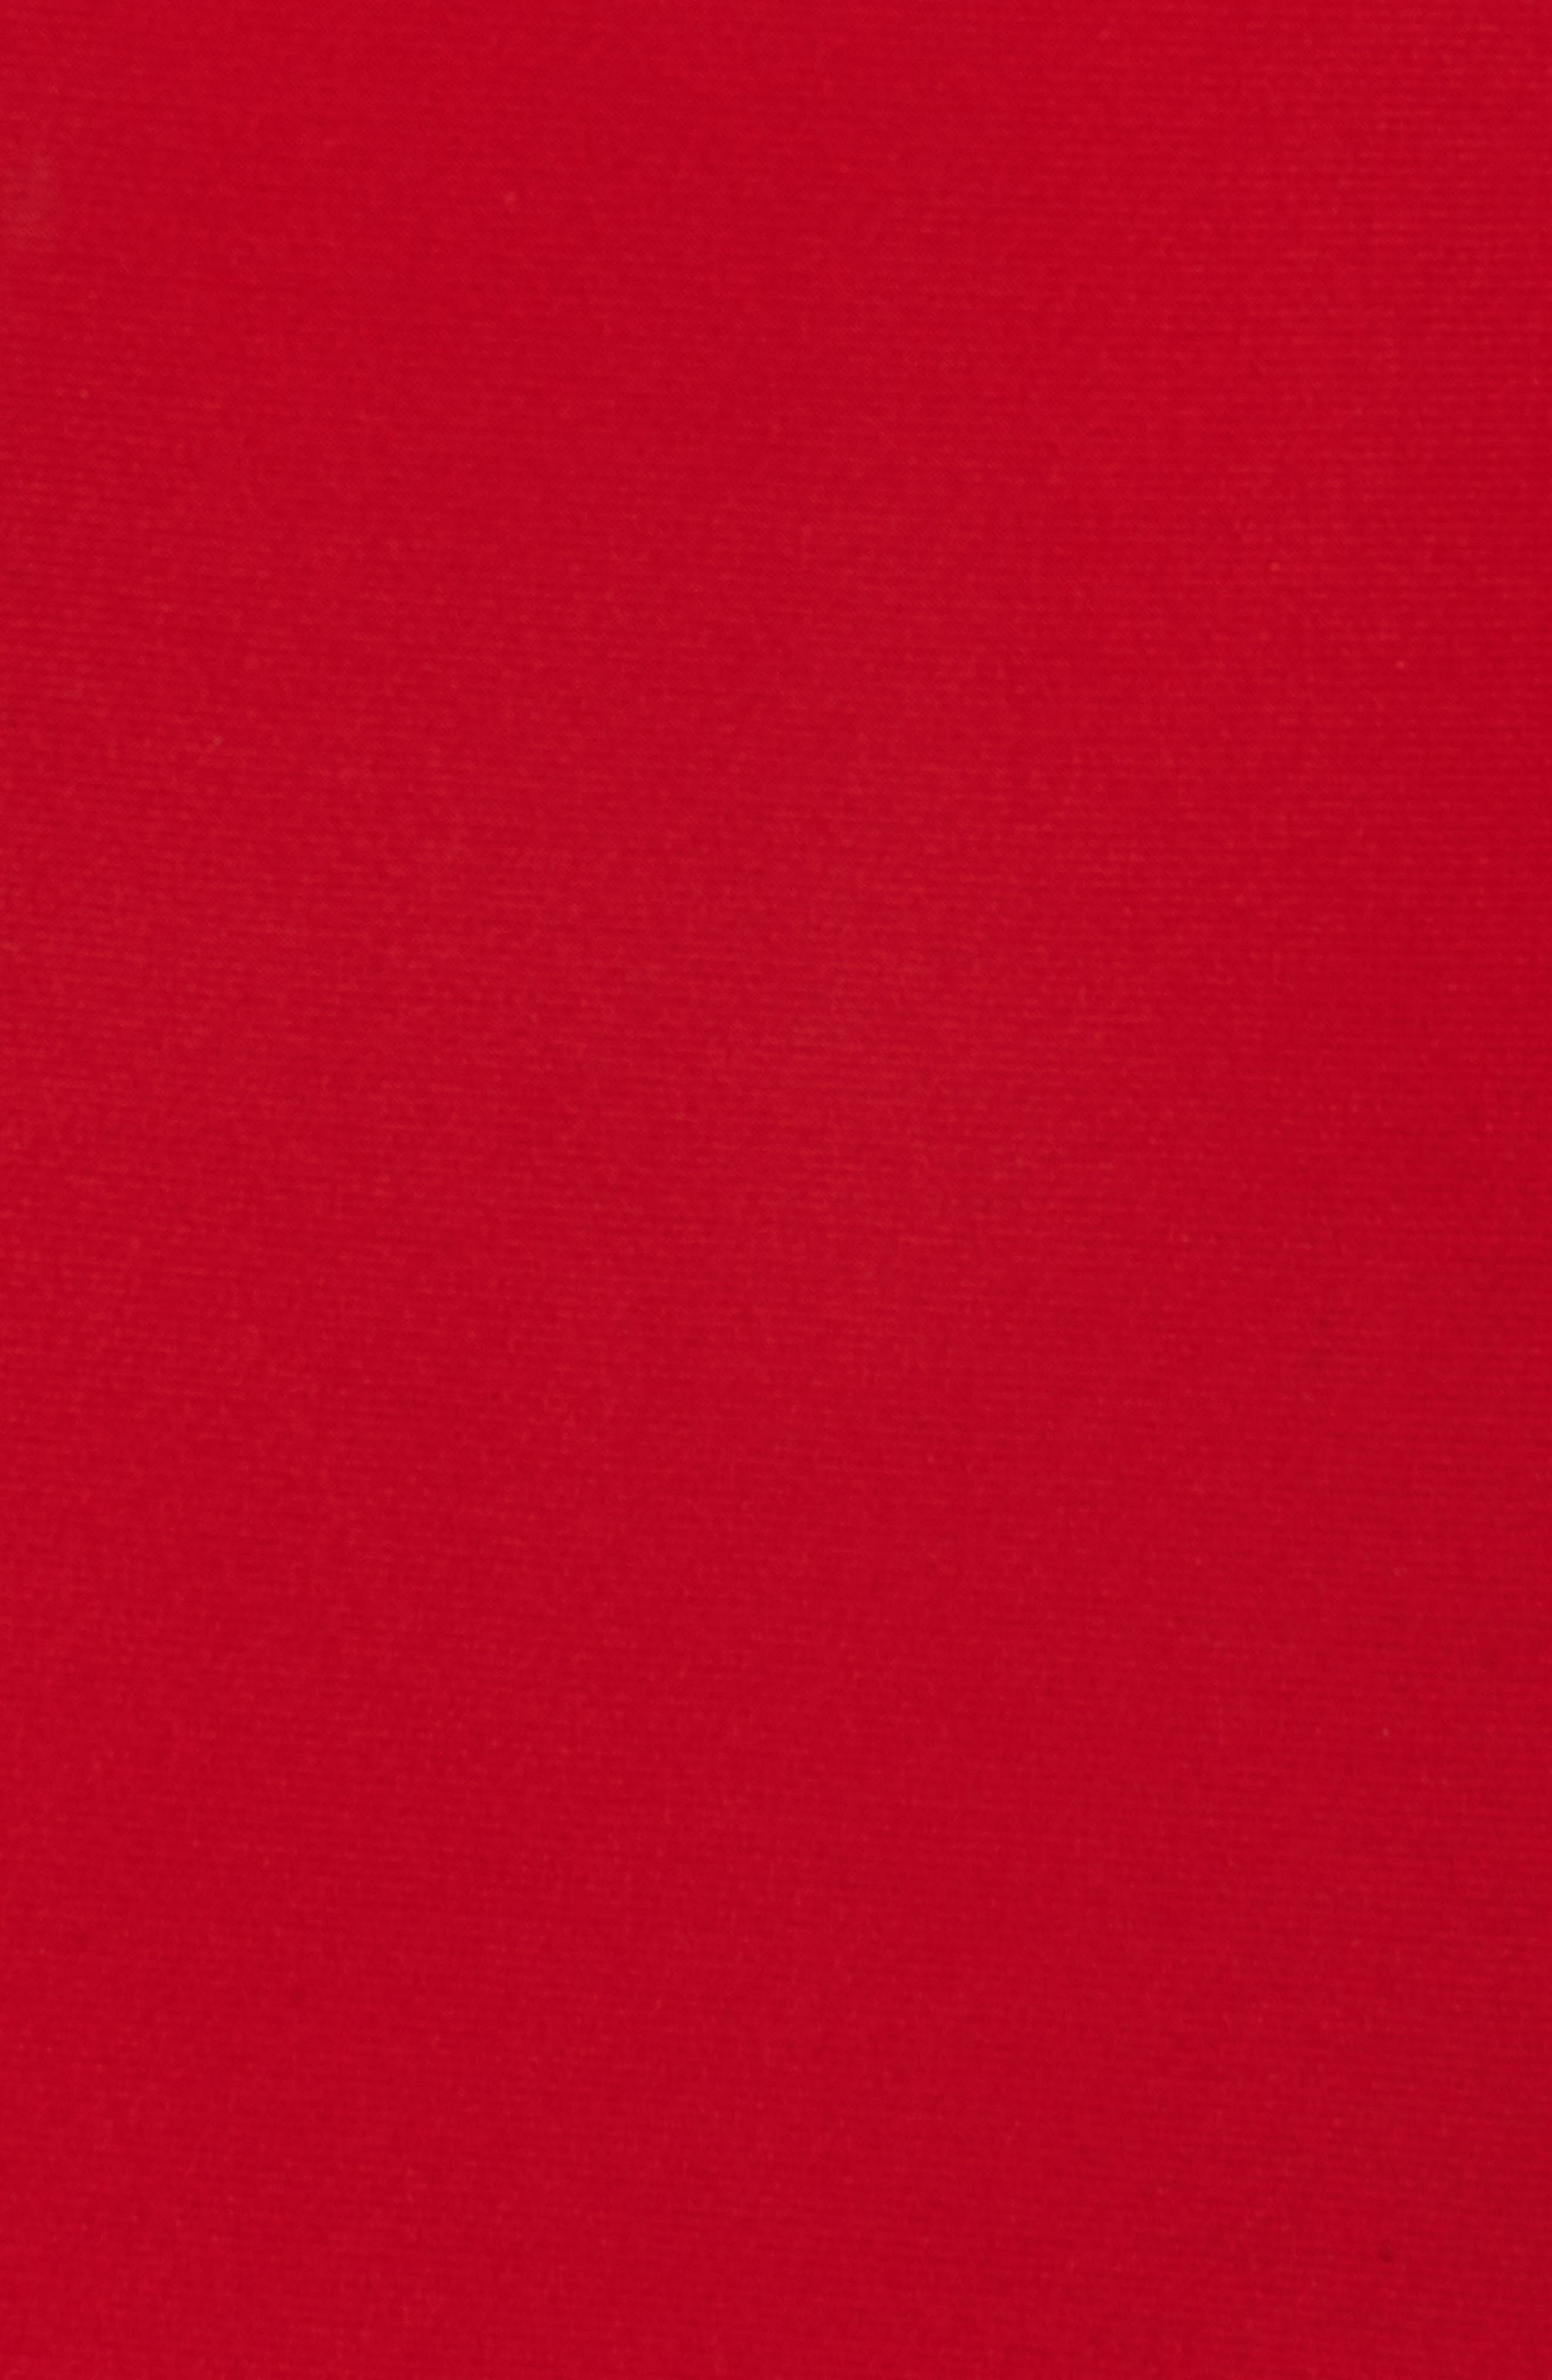 Jersey Gown,                             Alternate thumbnail 5, color,                             Red